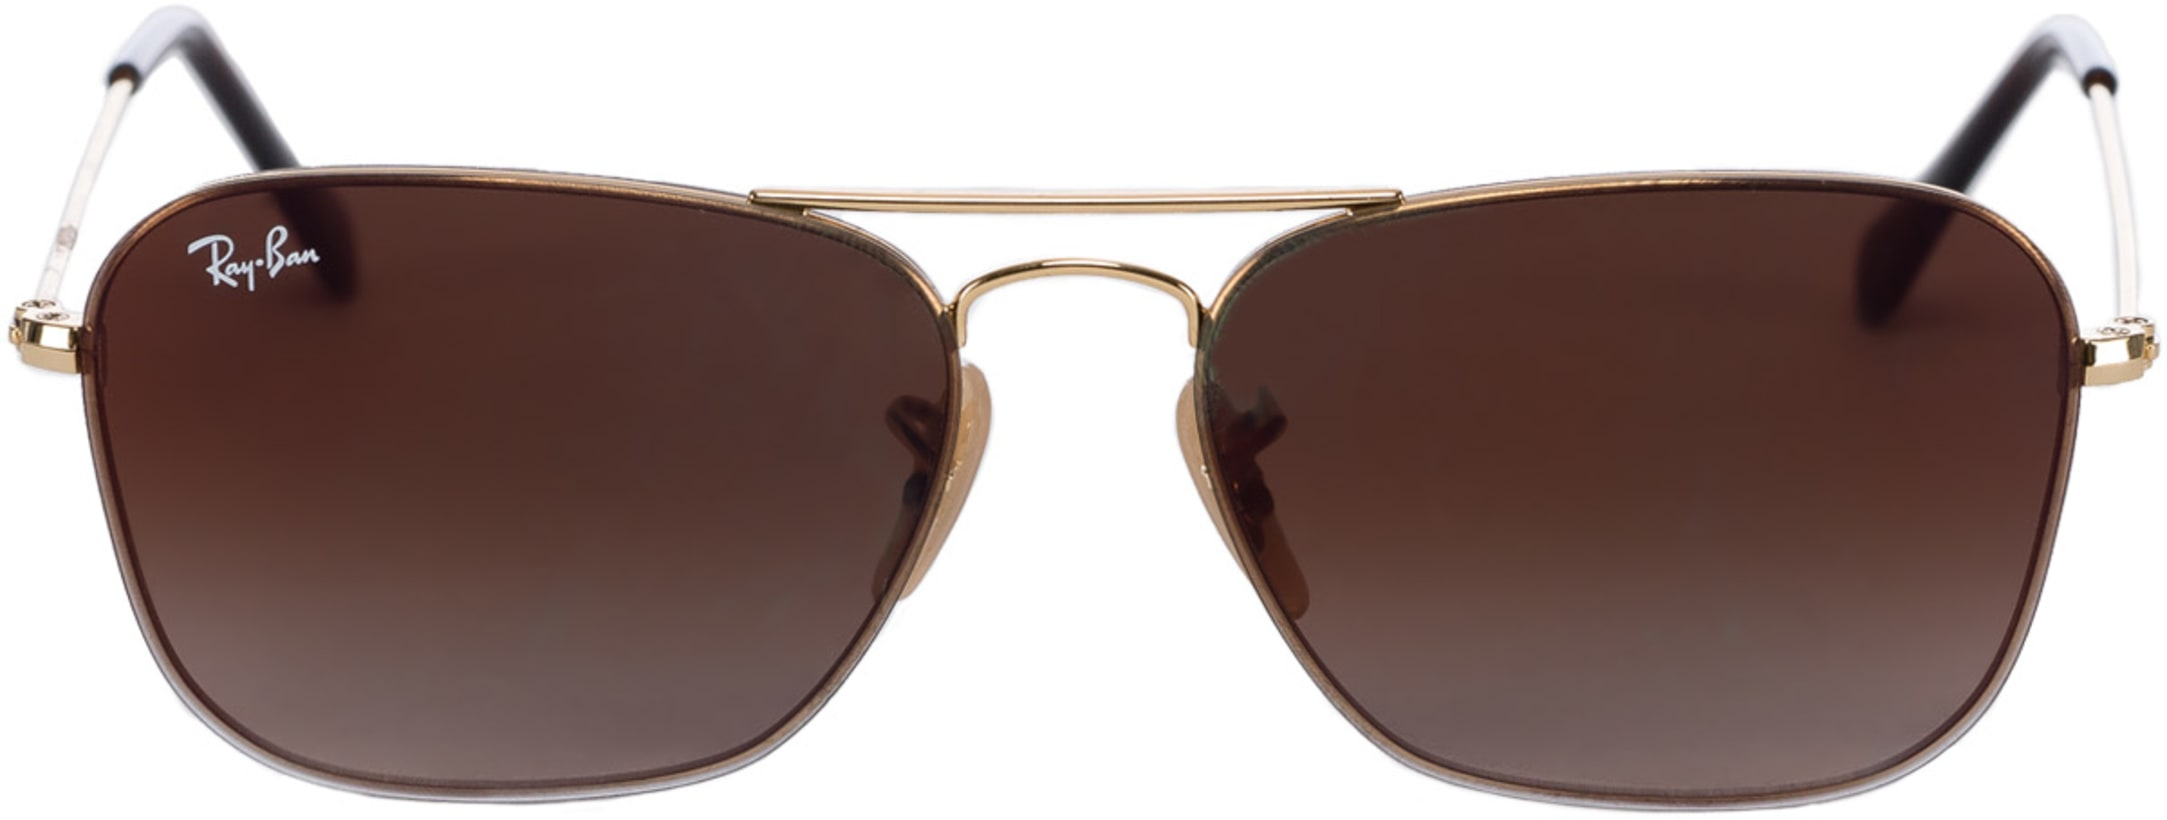 b54c7ab614 Ray-Ban. Square Gradient Mirror Sunglasses - Gold Brown Gradient Mirror